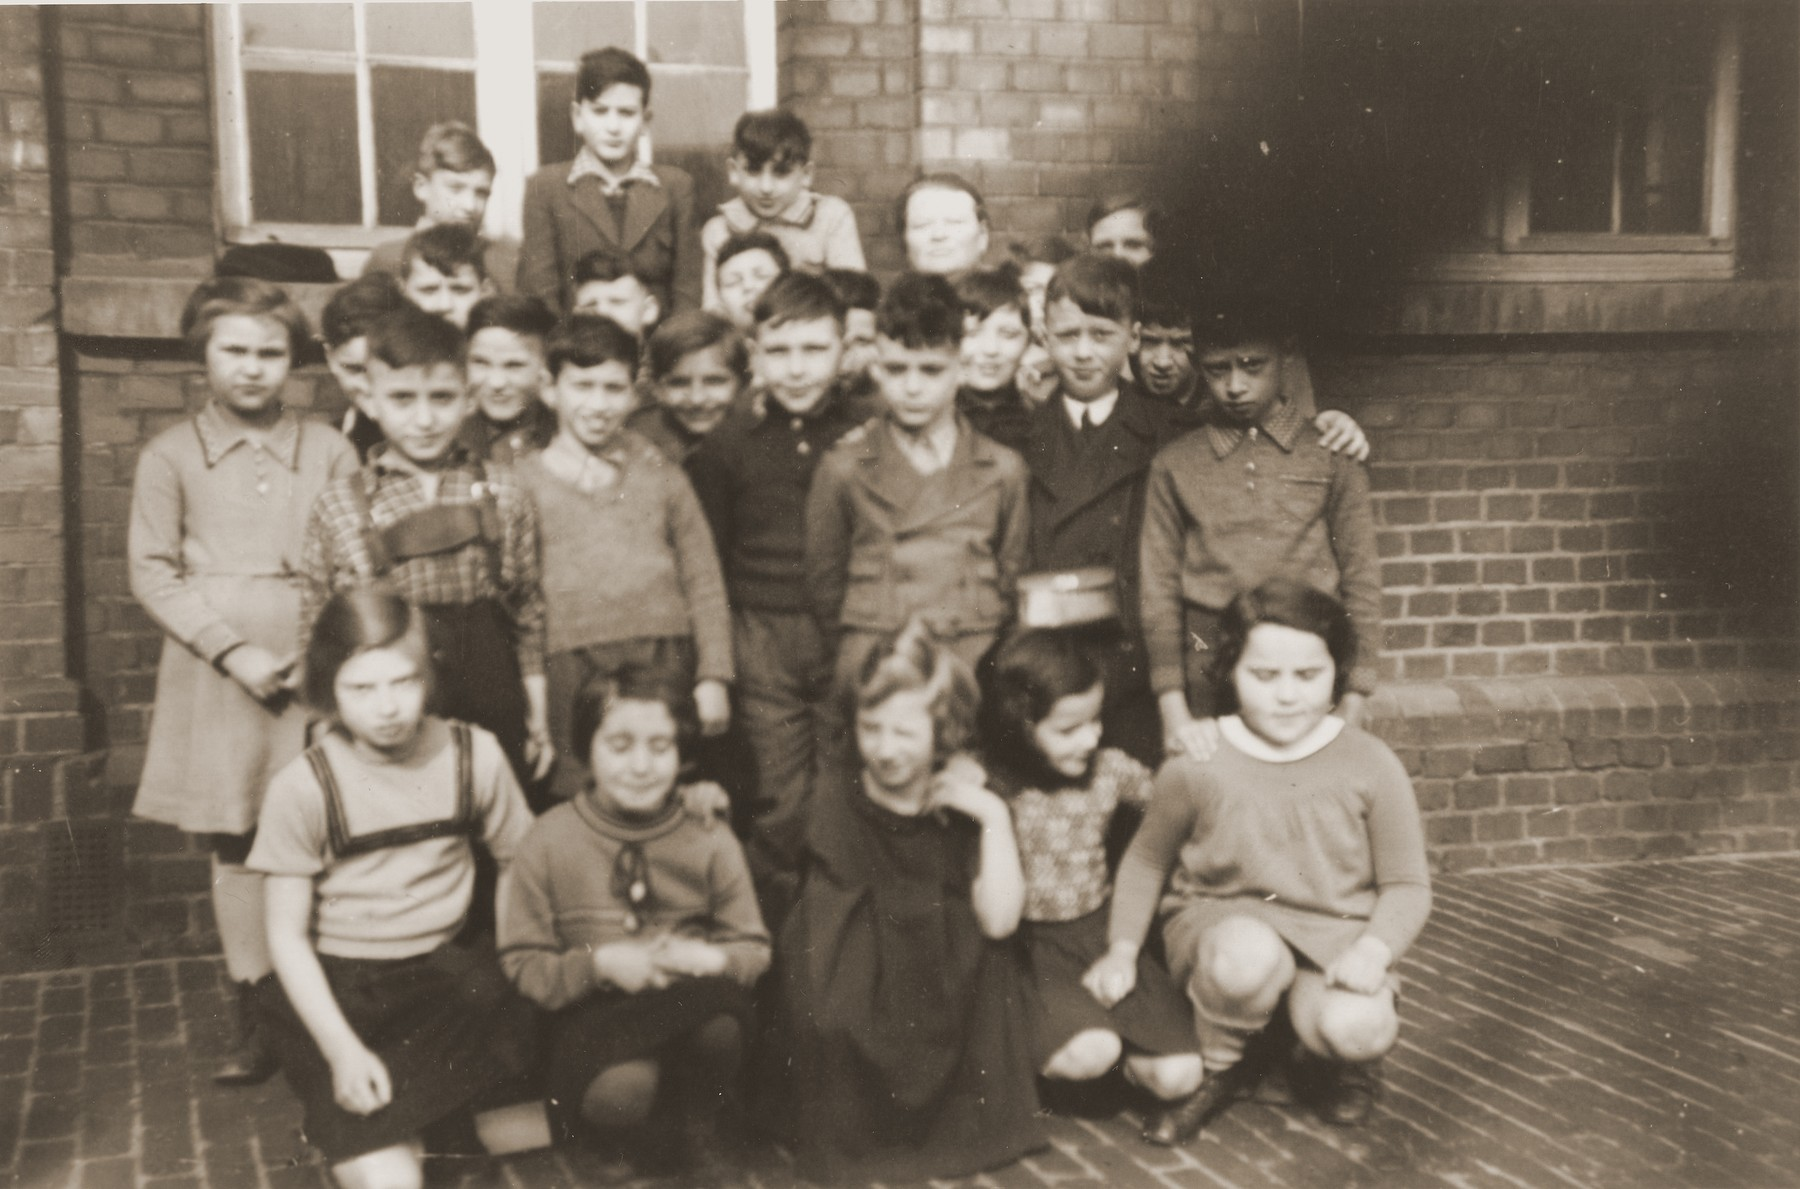 Group portrait of students at the Israelitische Volkschule Essen after the expulsion of the children of Polish origin.   Among those pictured is Heinz Straus (back row, second from the left).